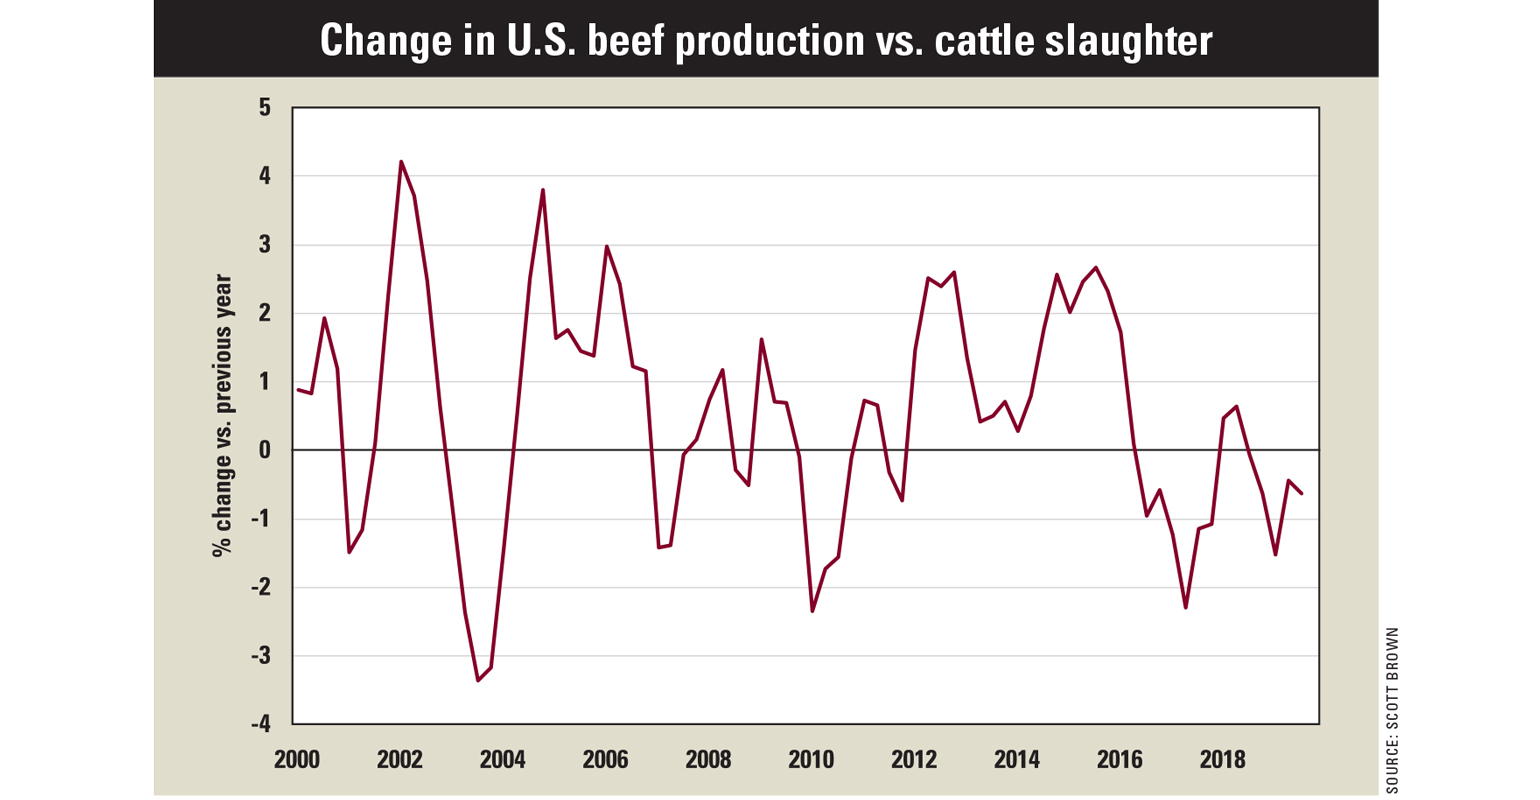 Change in U.S. beef product vs. cattle slaughter chart